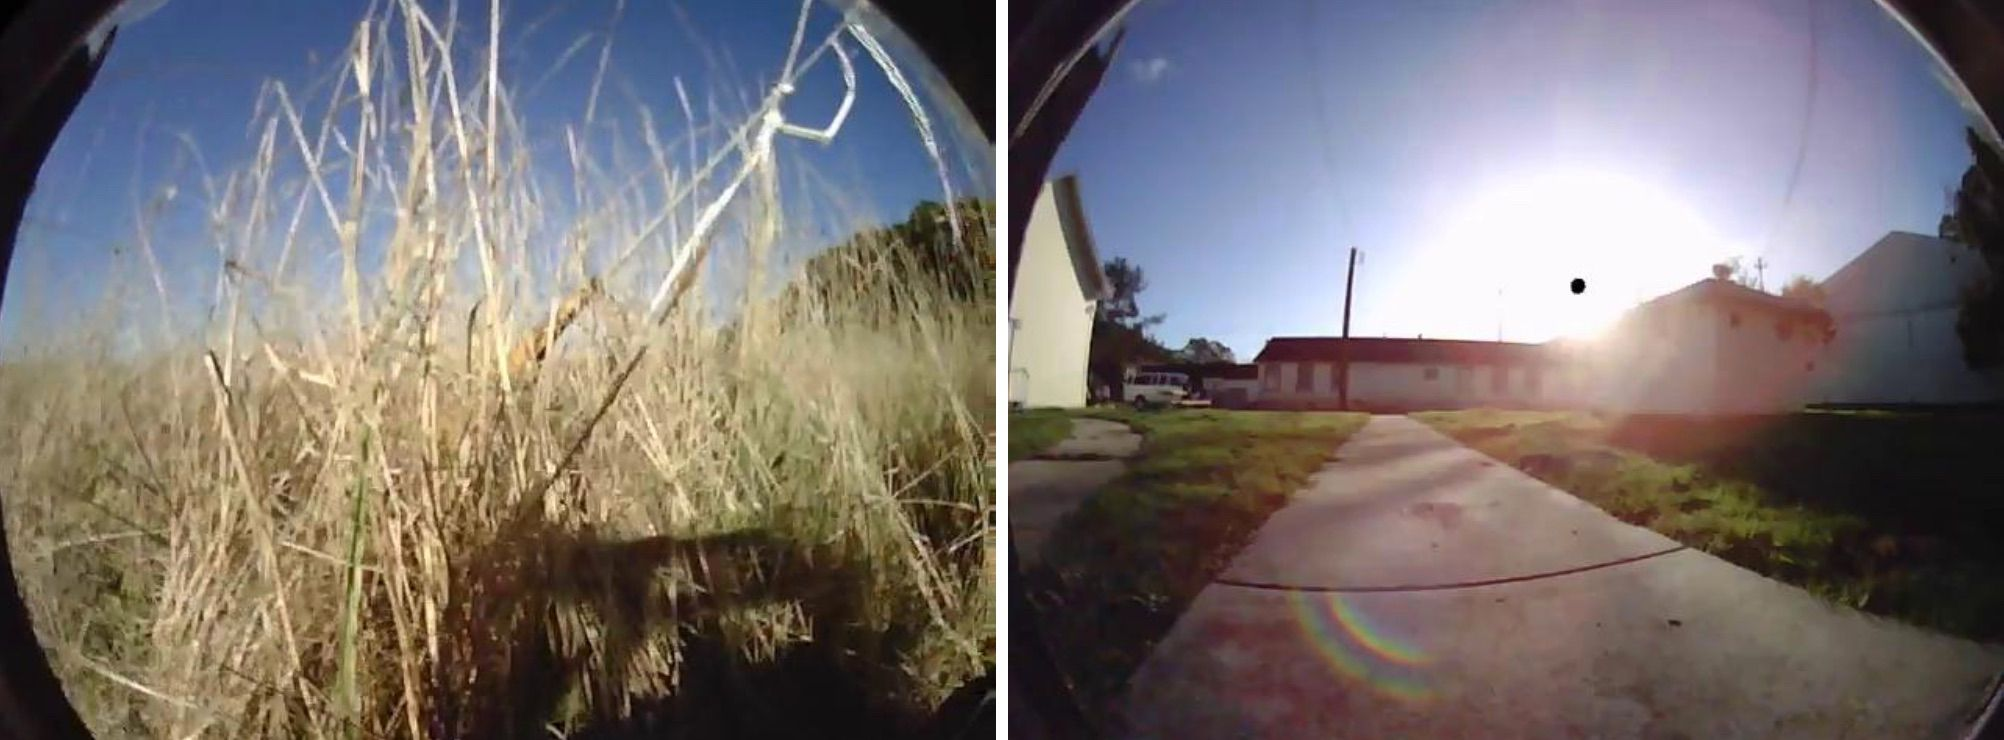 Views of grass and concrete path that UC Berkeley's robot BADGR can learn to navigate on its own